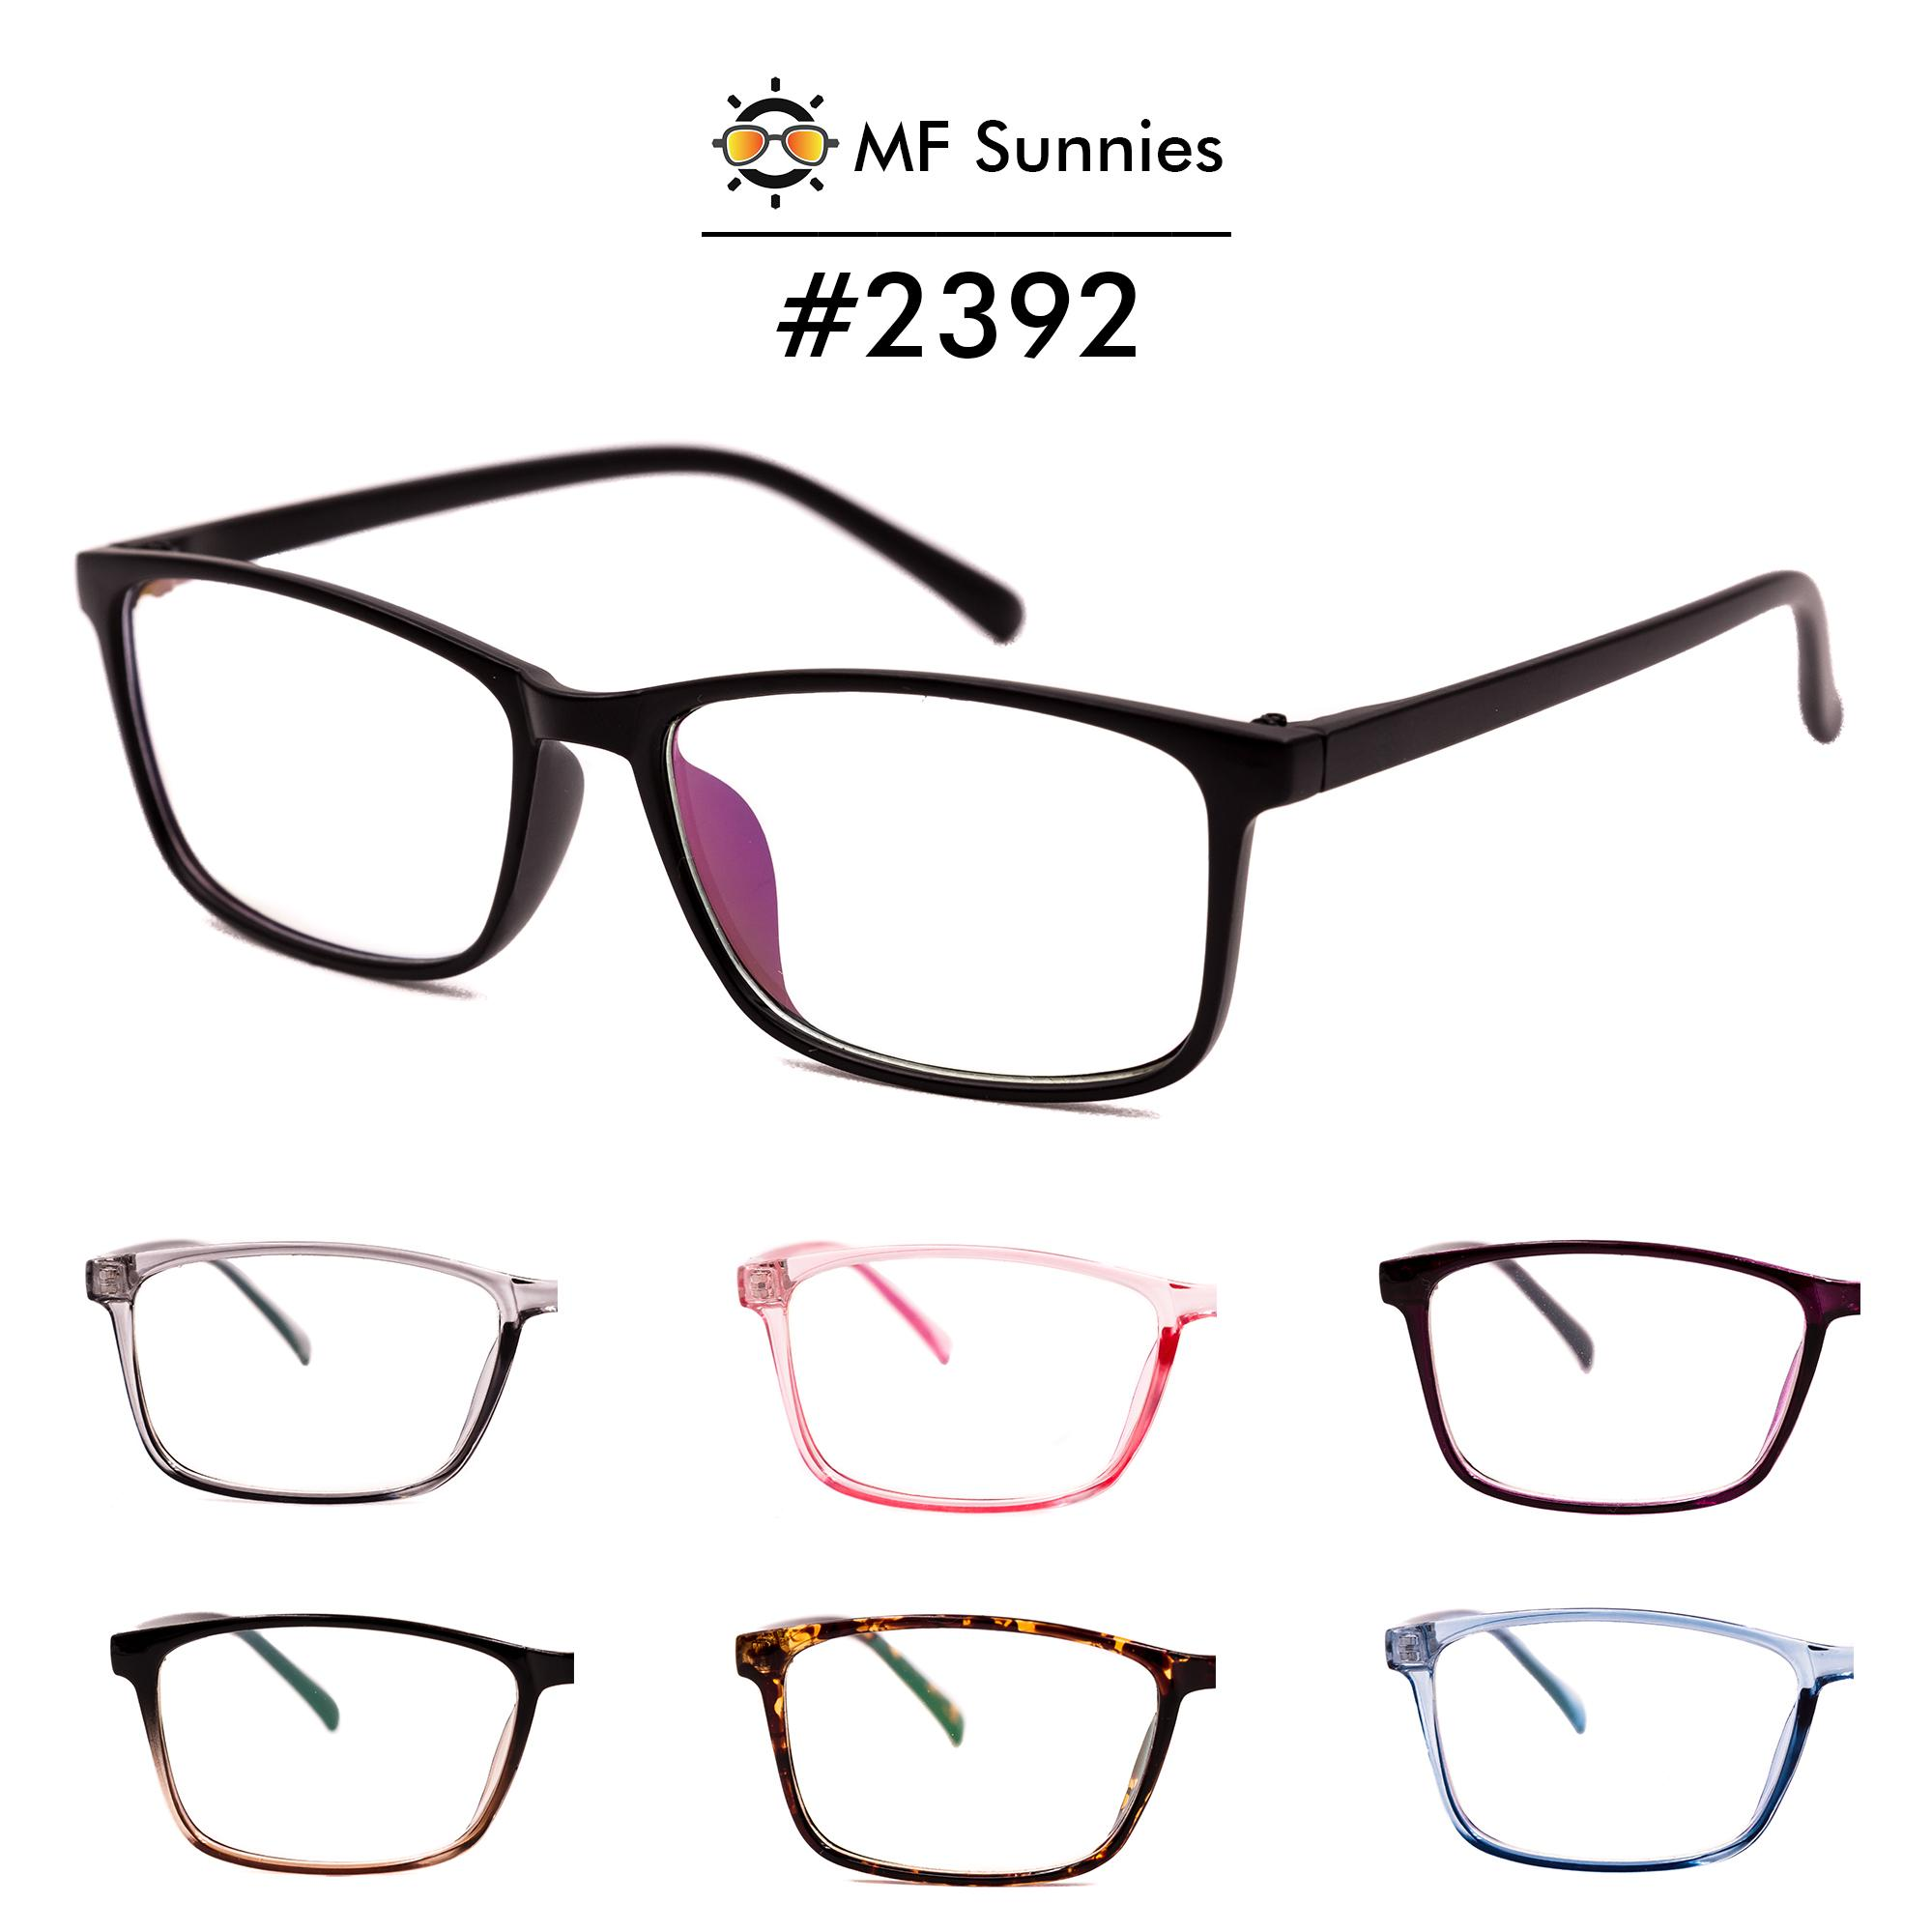 93cbfb4f33ac MFSunnies Computer Anti-Radiation Blue light Unisex eyewear High quality  acetate optical frame Metal